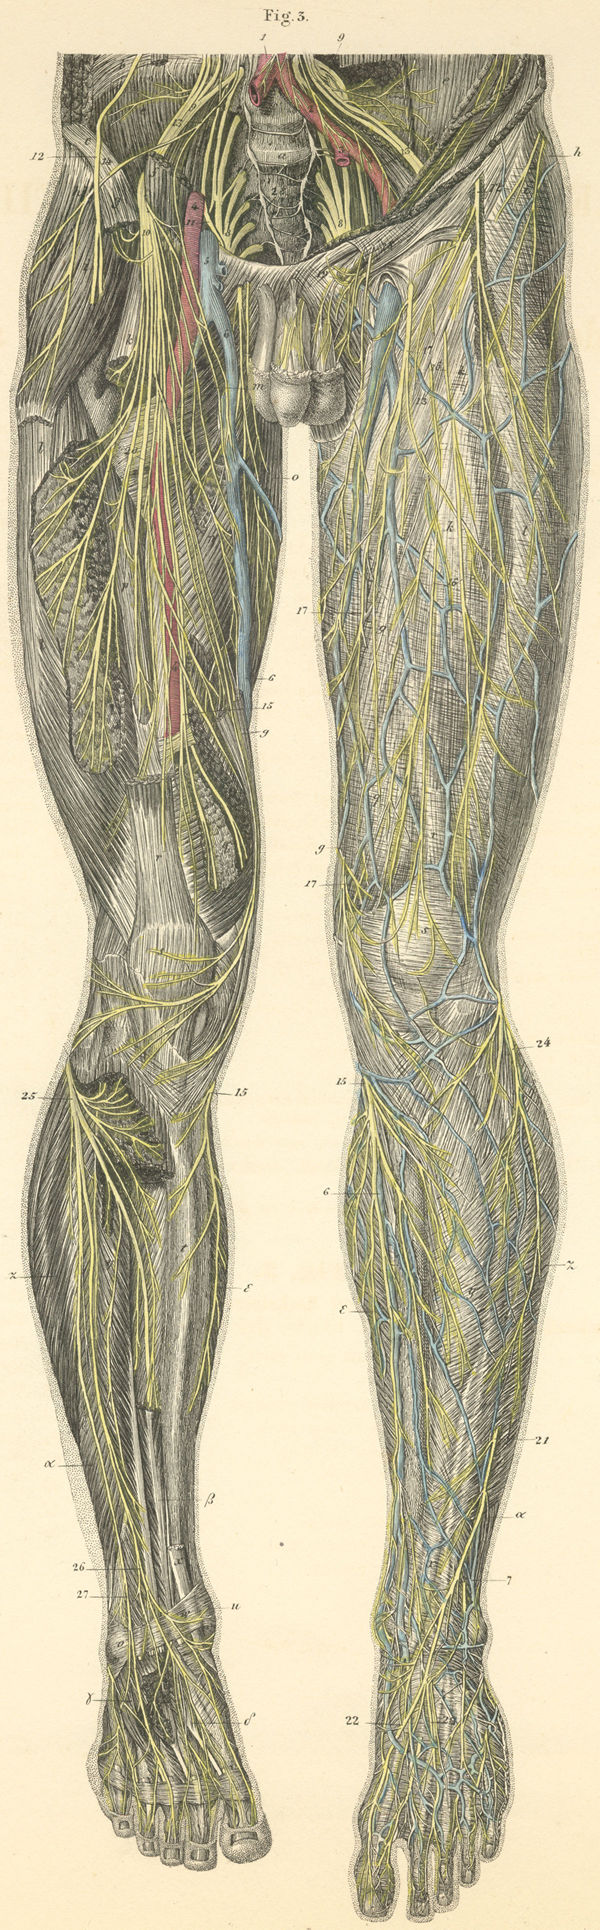 Anatomy atlases atlas of human anatomy plate 28 figure 3 skin and muscle nerves of the anterior surface of the left leg ccuart Gallery